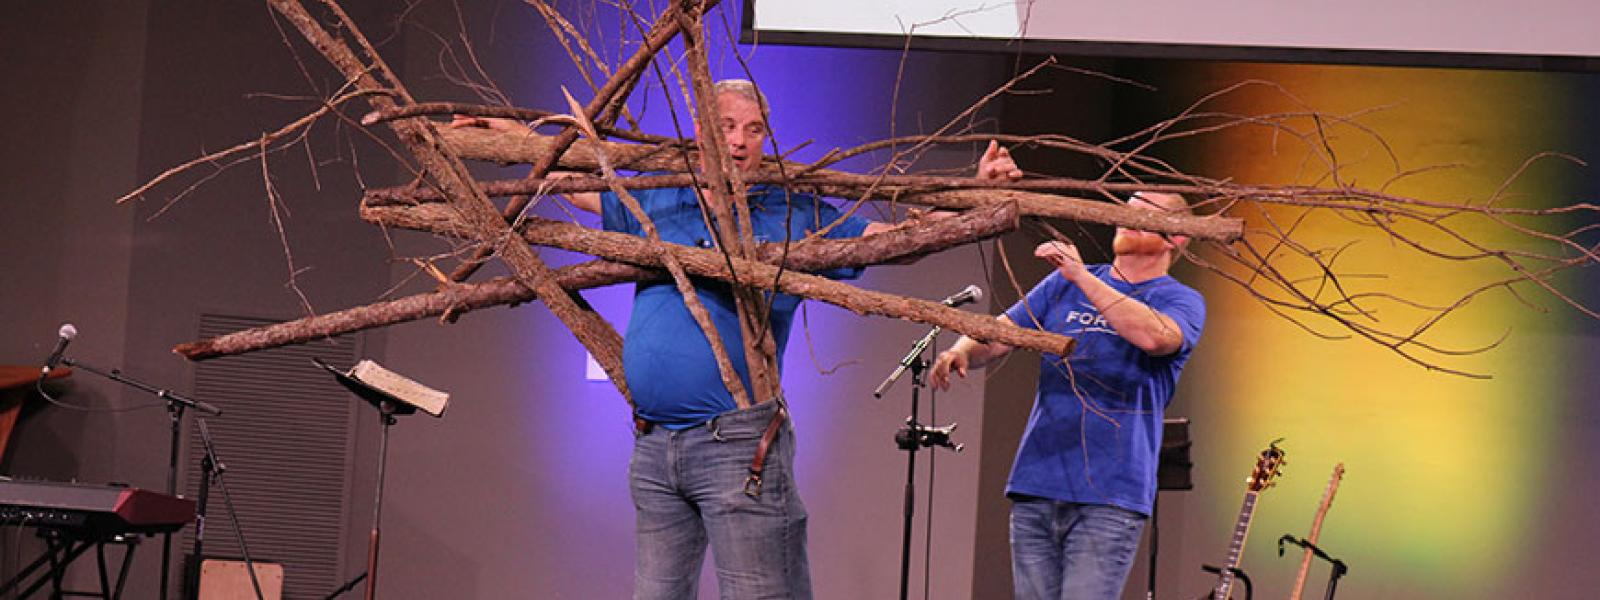 CIU alumnus Adrian Despres of Forge uses tree branches symbolizing sins to demonstrate how sin affects the Christian life.